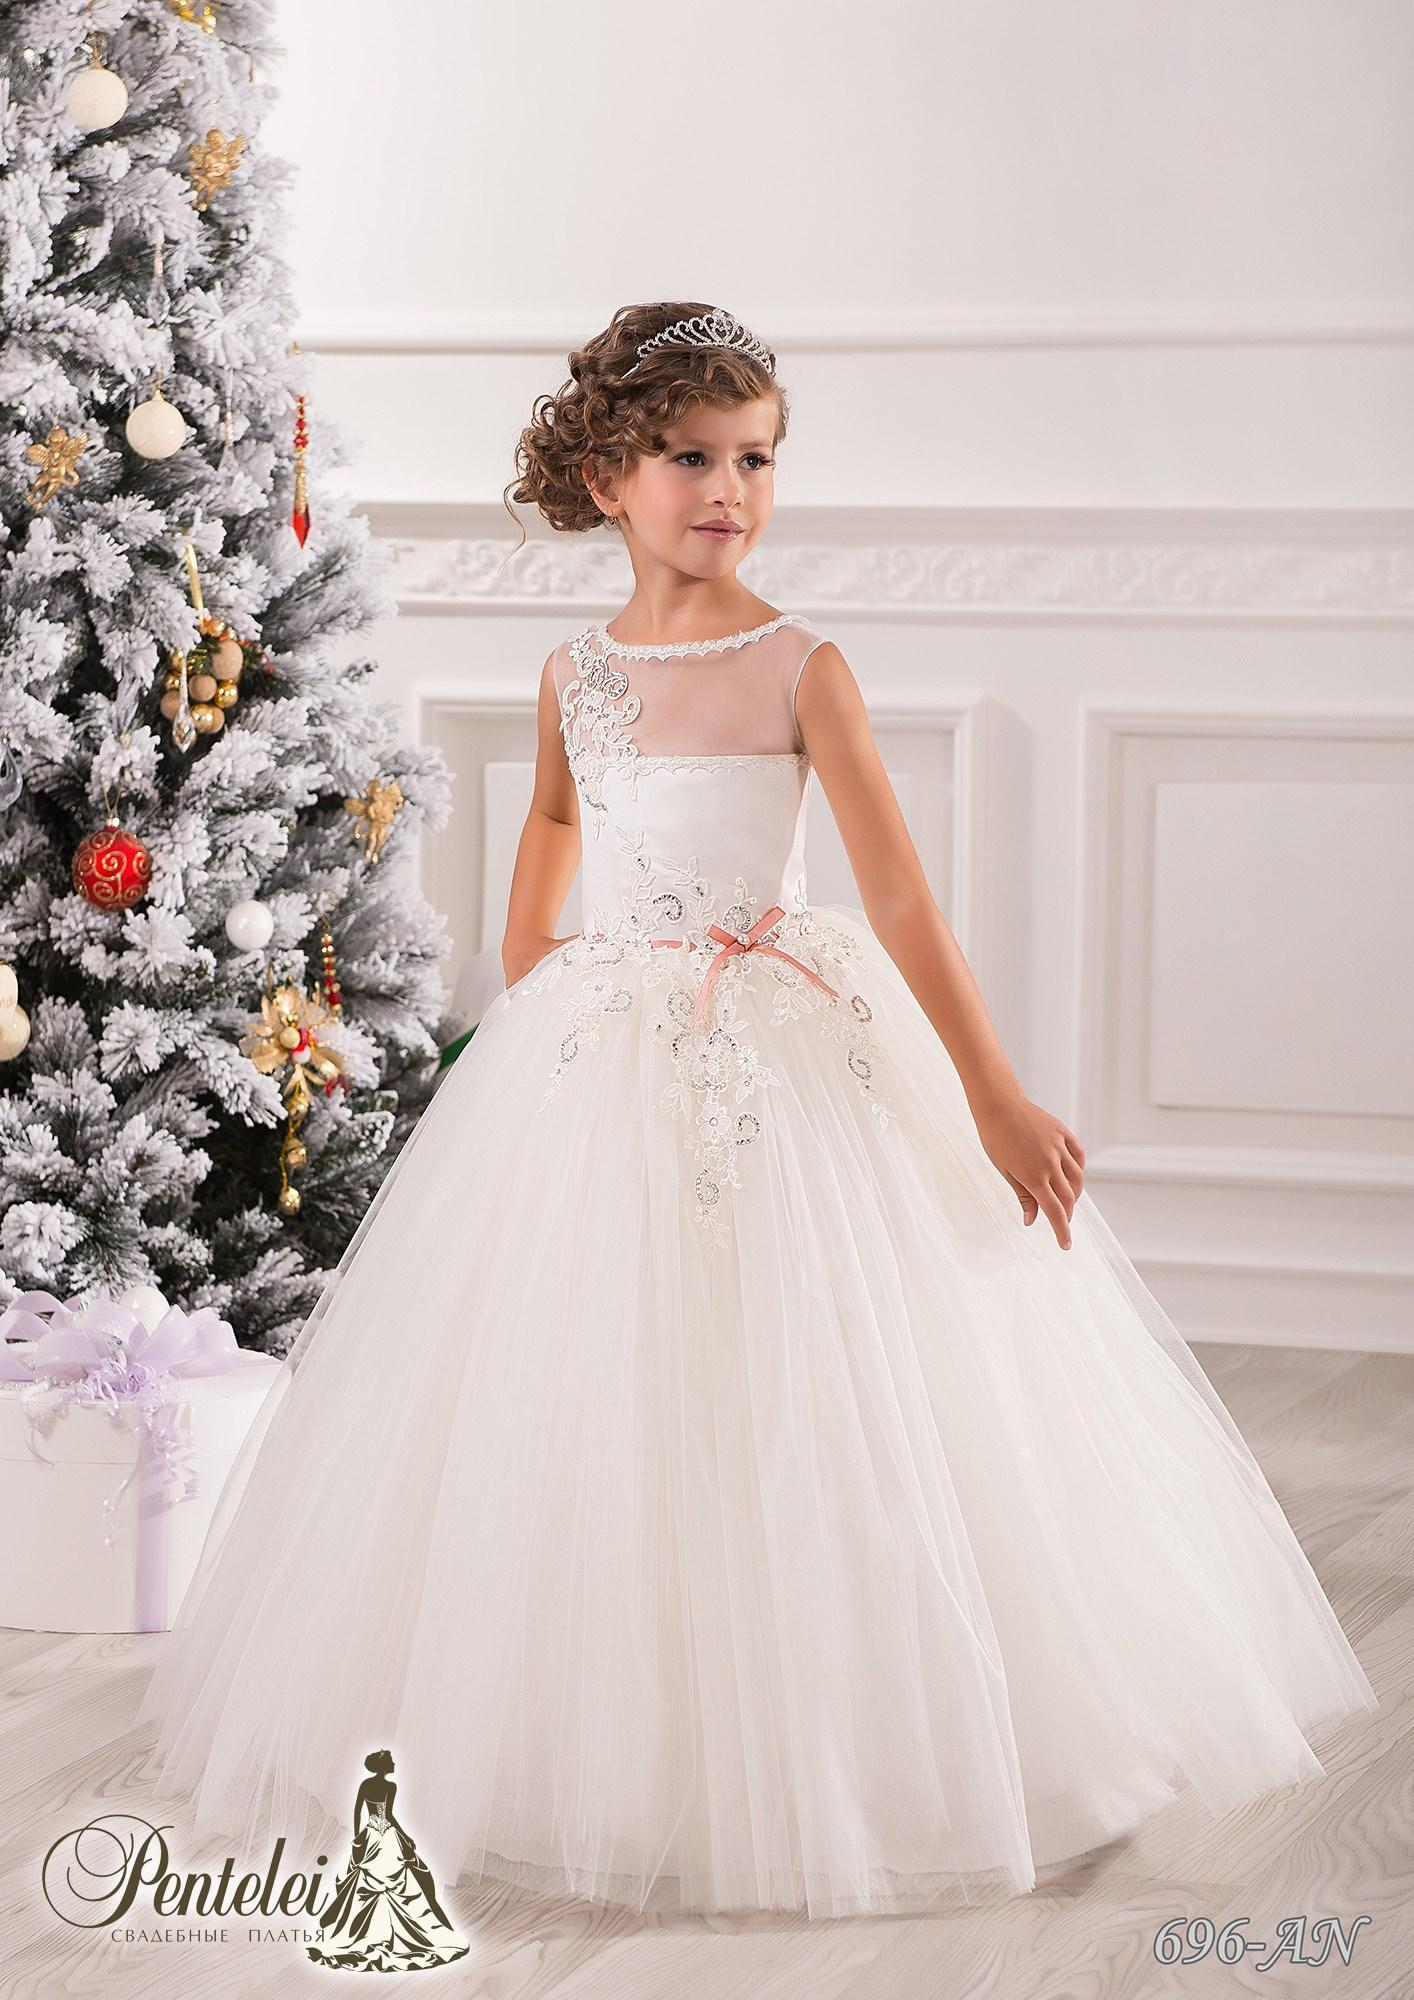 Beautiful Vintage Ball Gown Flower Girl Dresses For Weddings Jewel Applique S